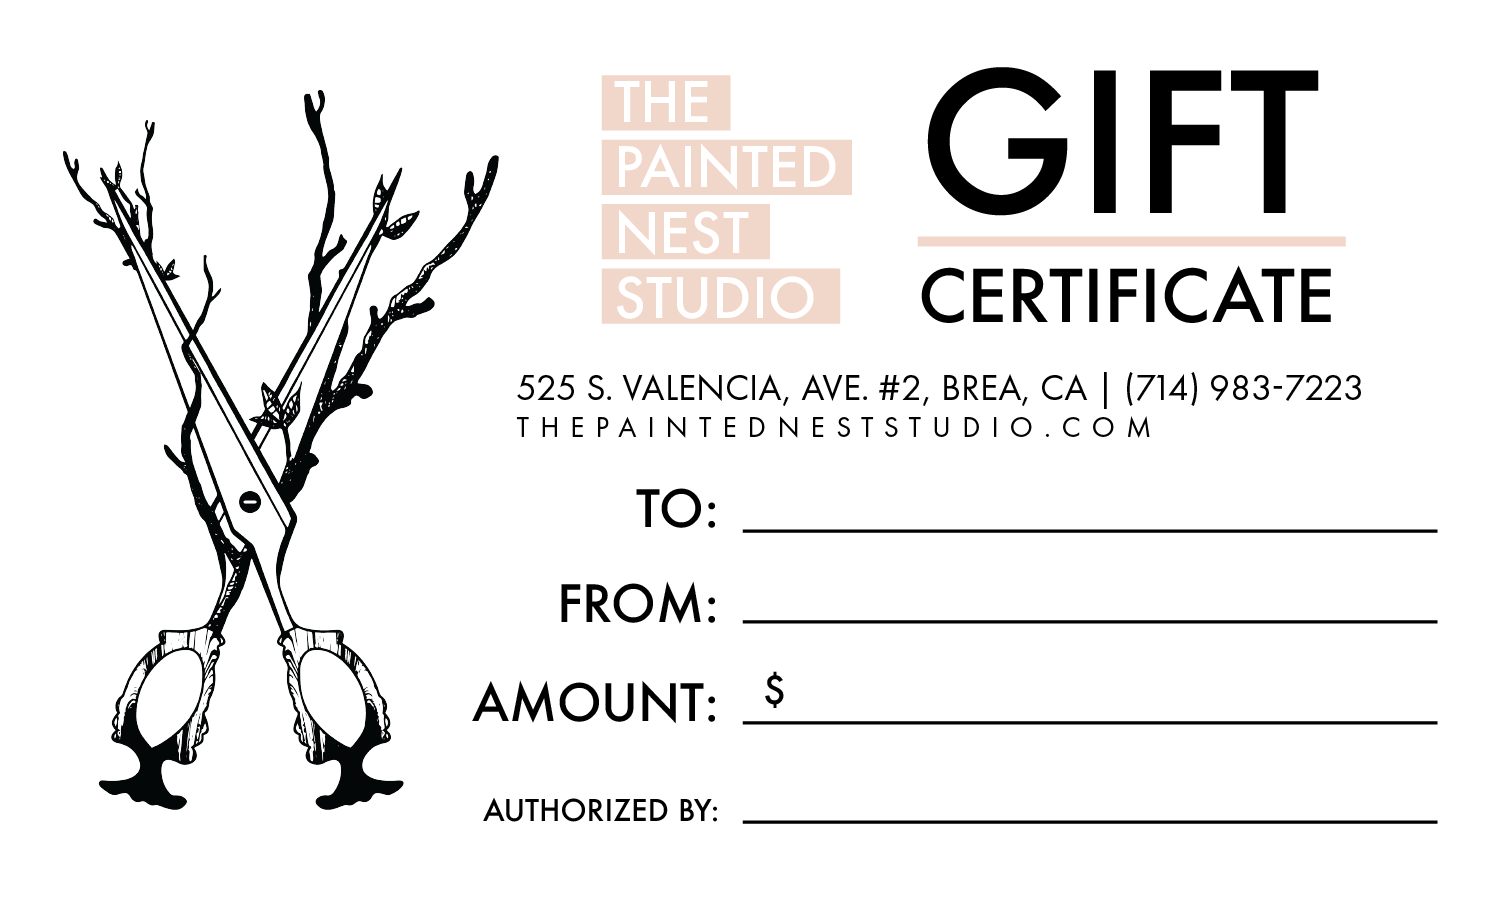 the painted nest studio gift certificate